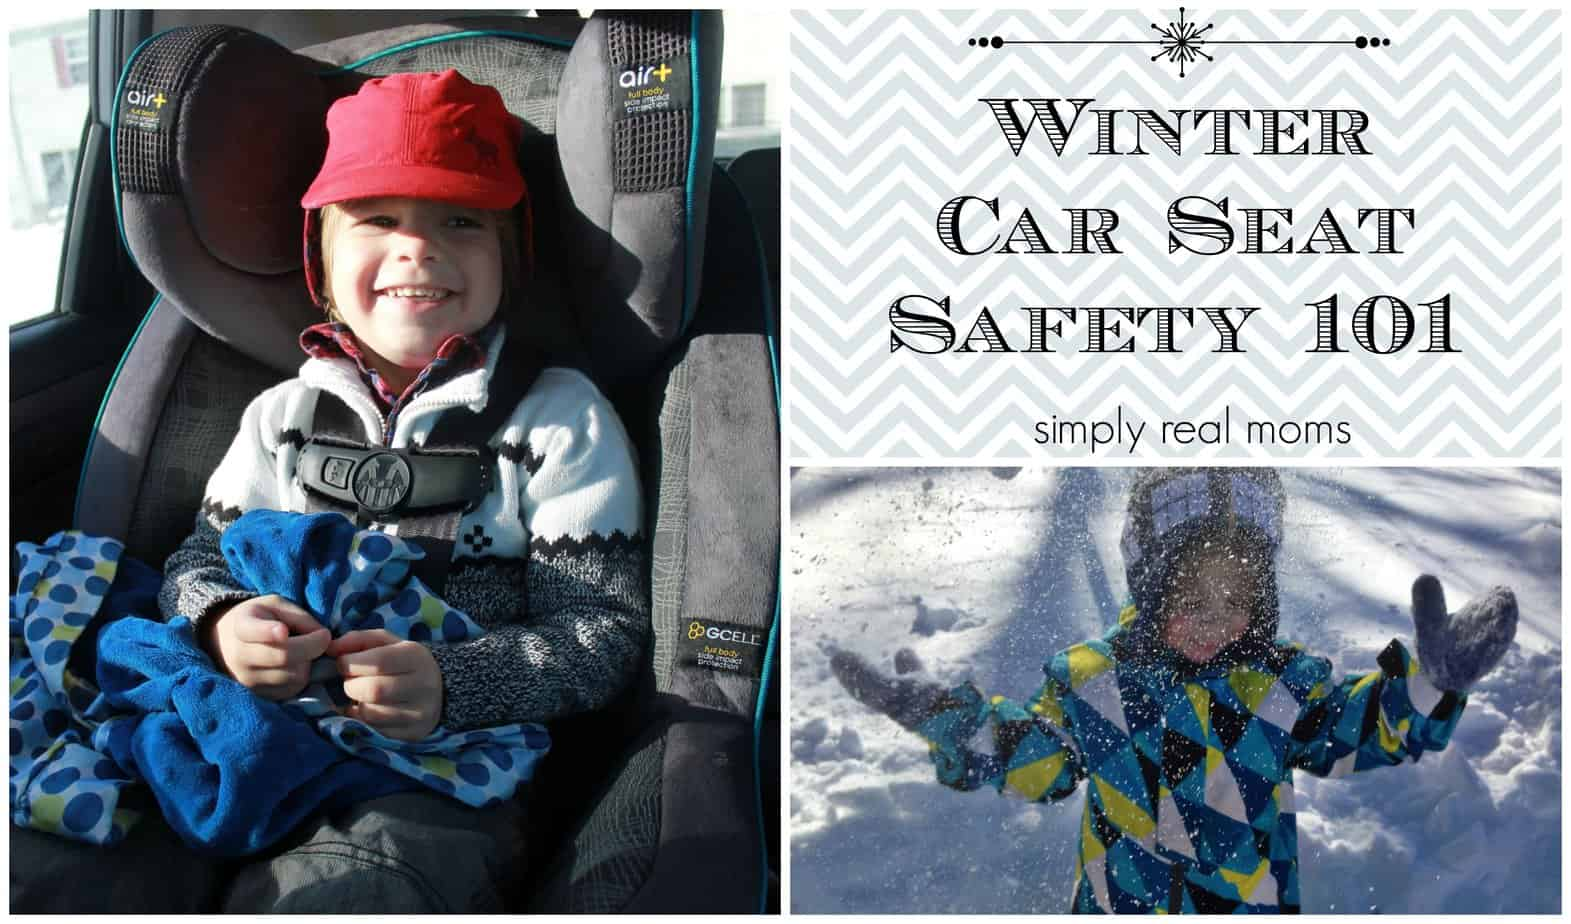 Winter Car Seat Safety 101 1